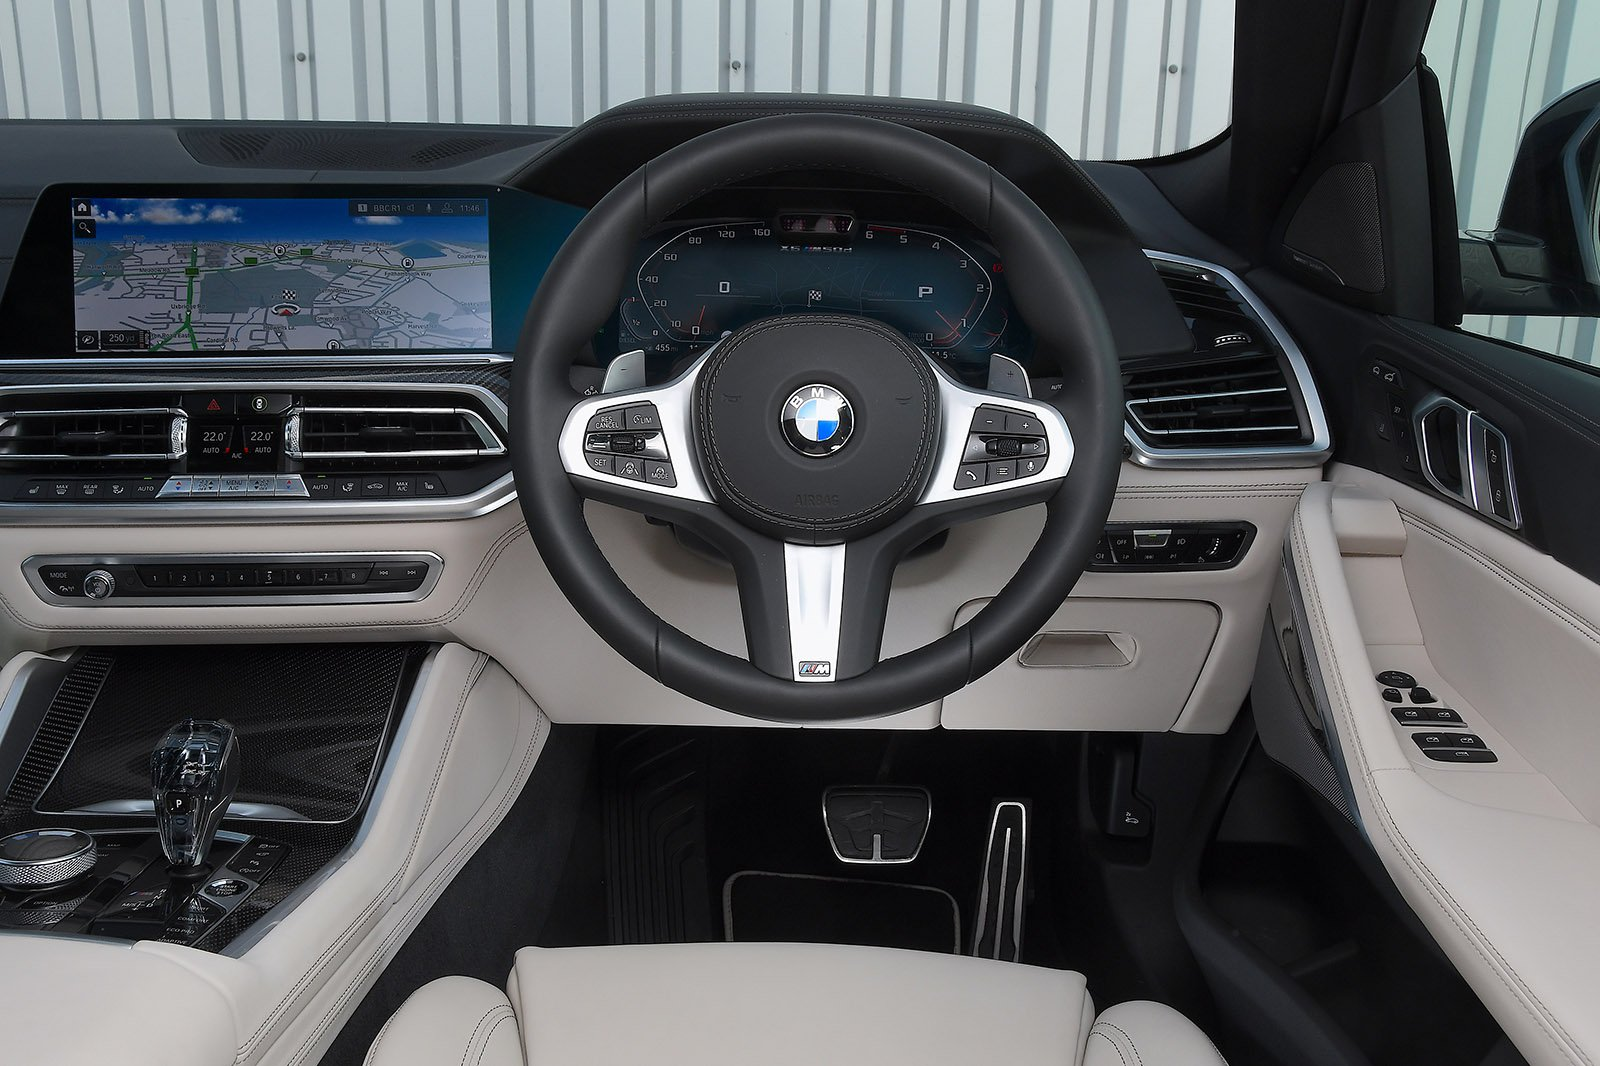 BMW X6 2020 RHD dashboard